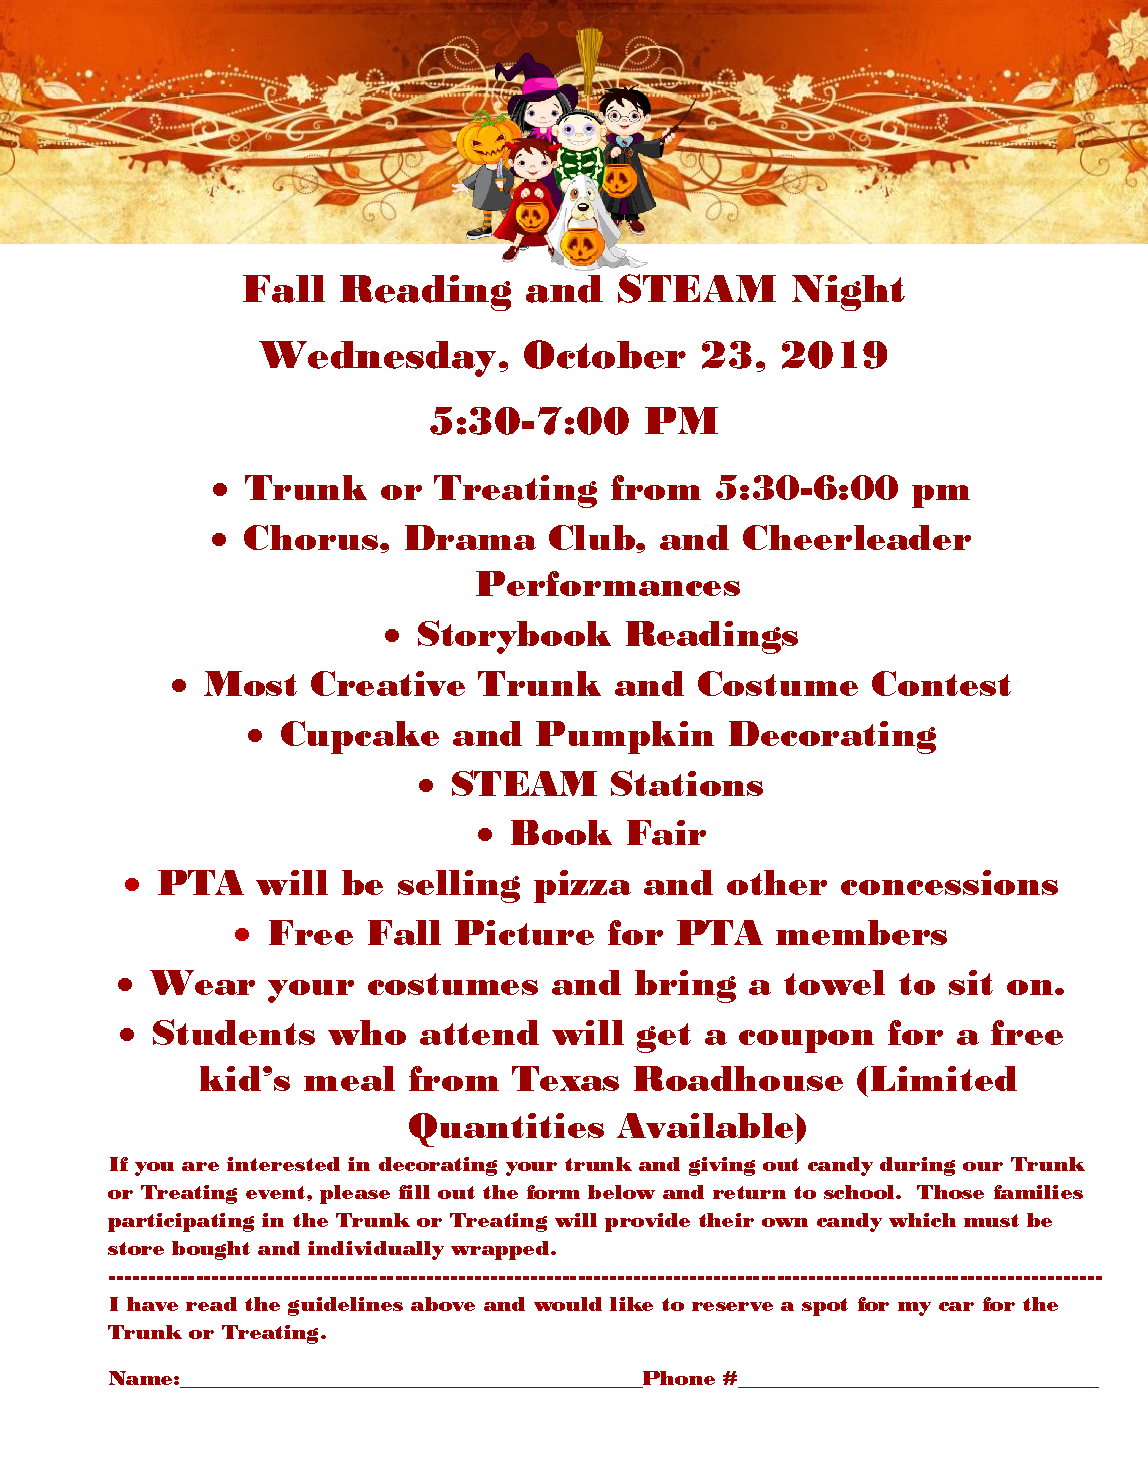 Fall Reading and STEAM Night